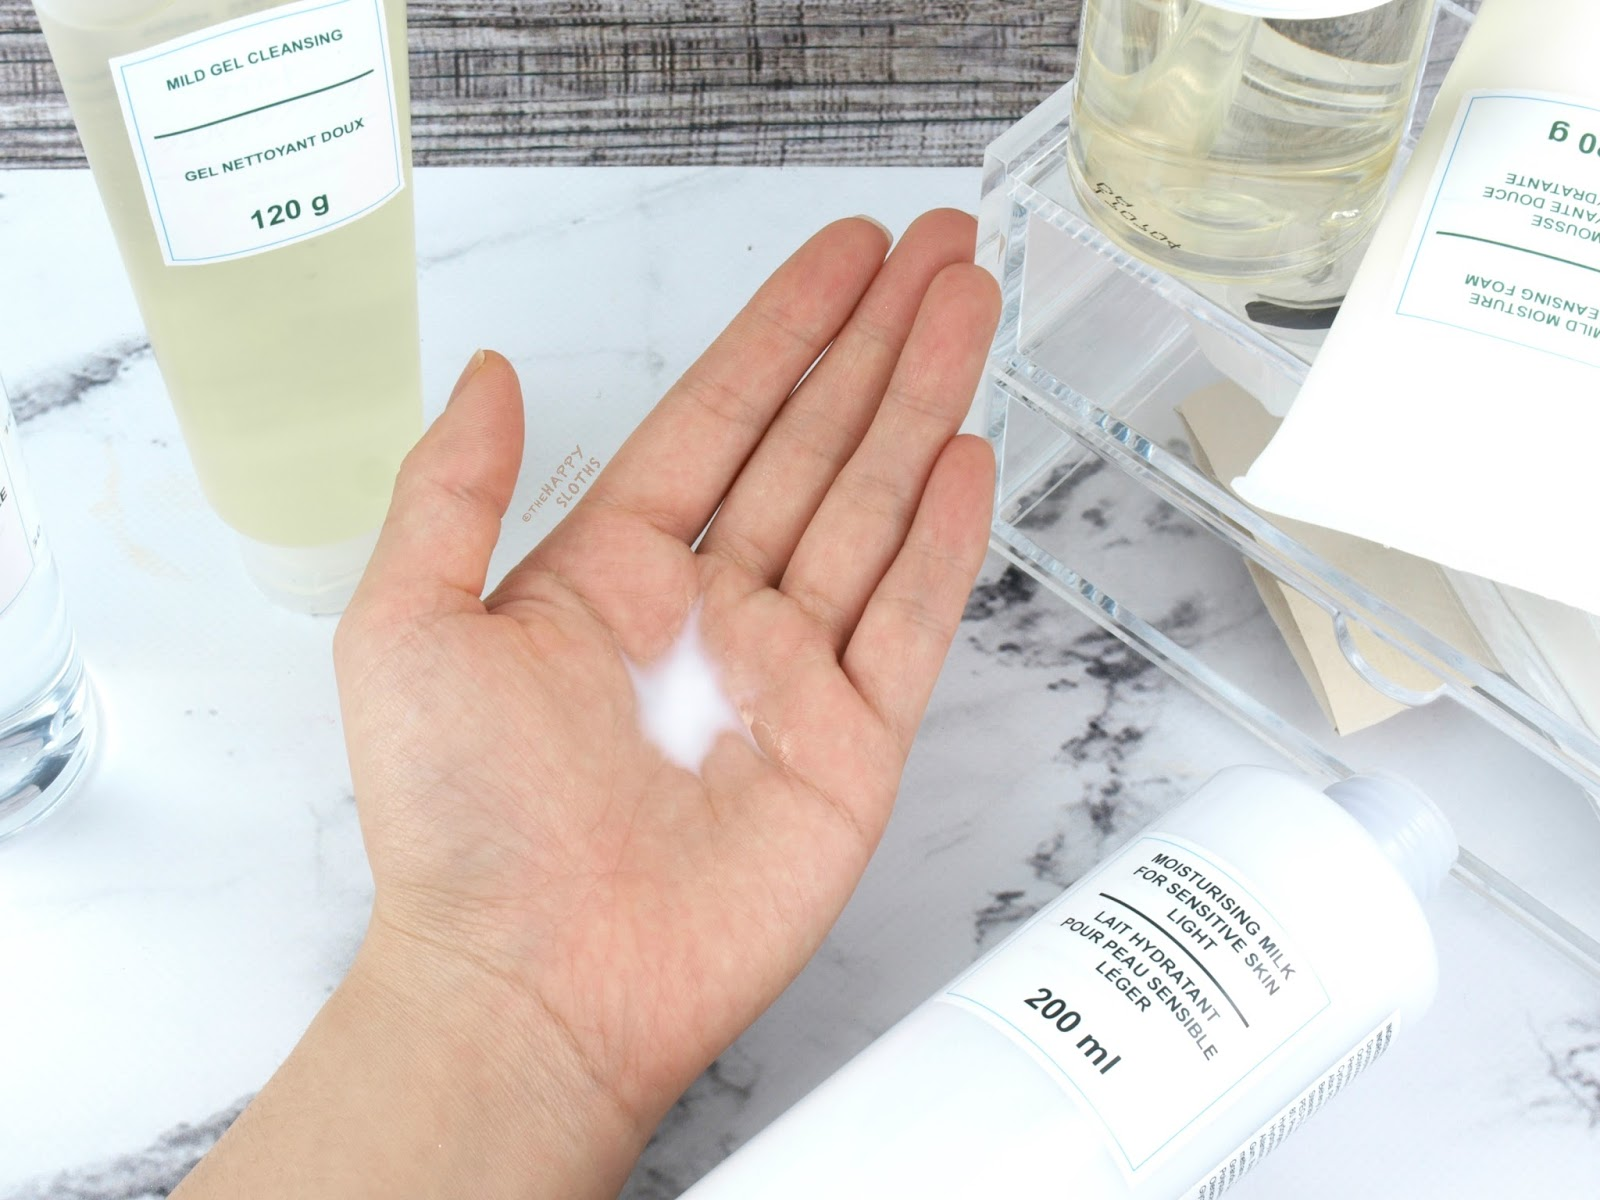 MUJI Skincare | Sensitive Skin Light Moisturizing Milk Review